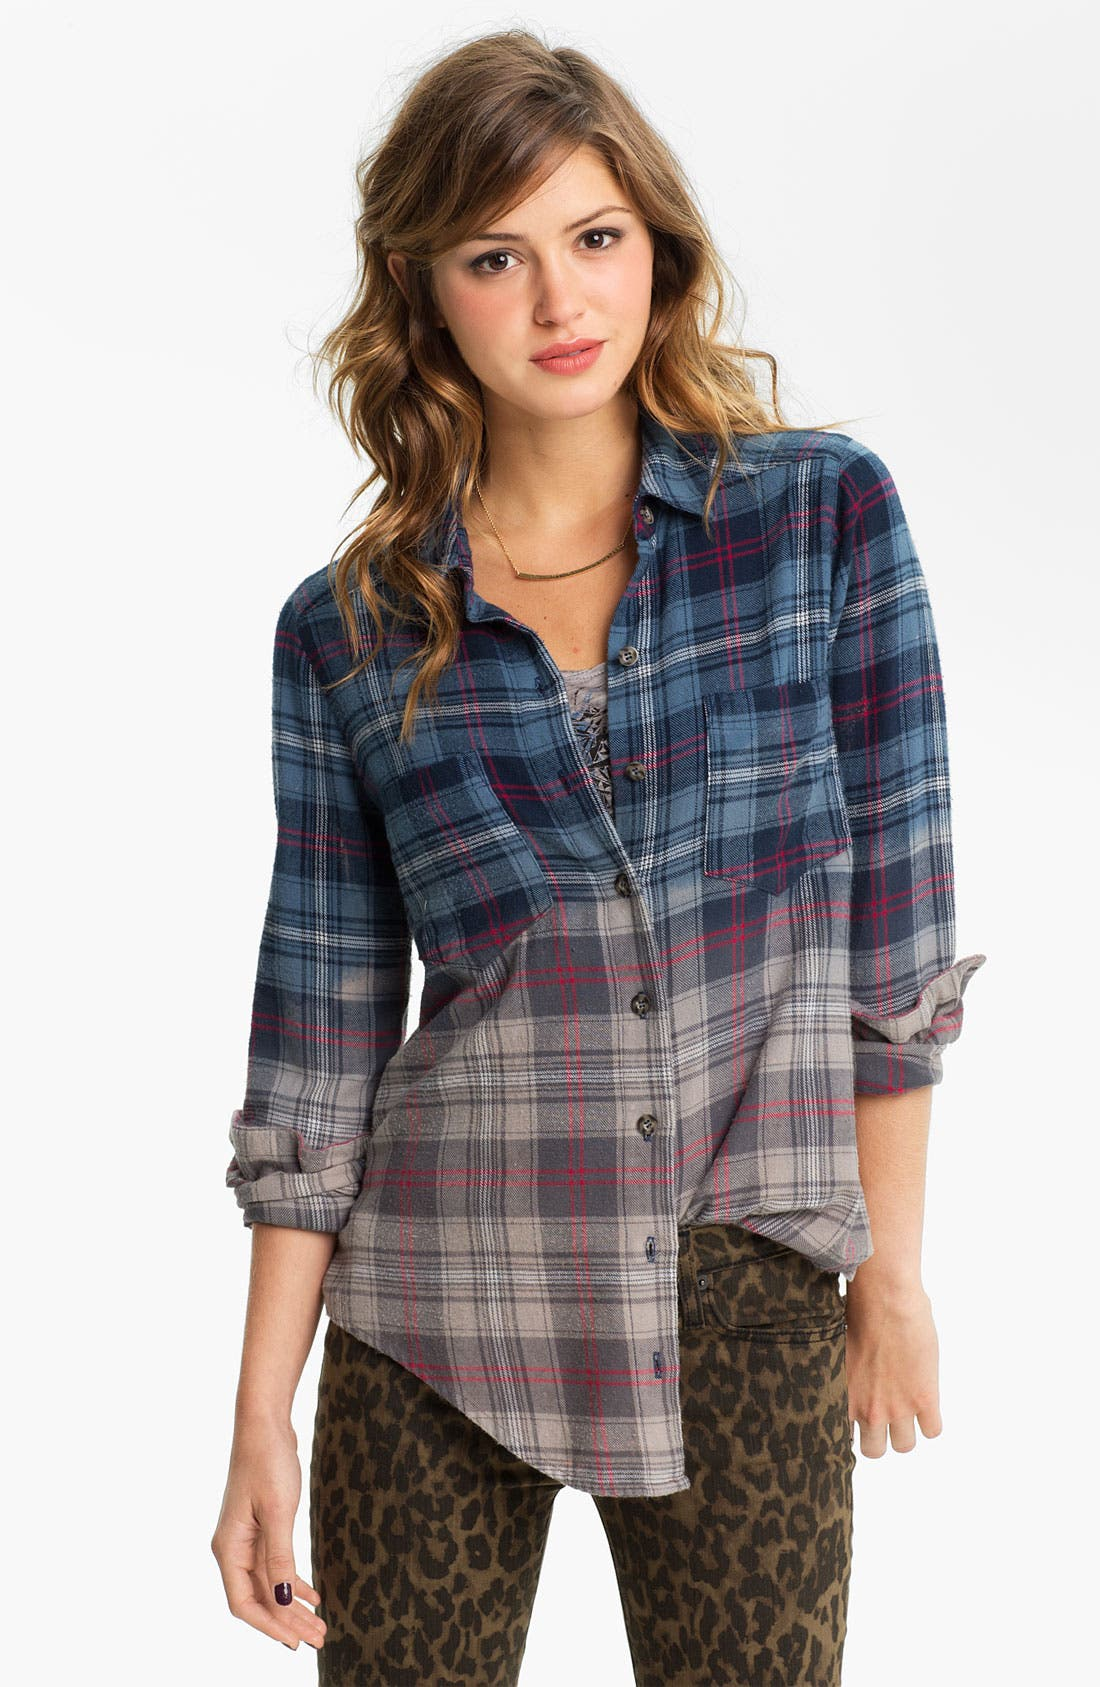 Alternate Image 1 Selected - Mimi Chica Ombré Plaid Shirt (Juniors)